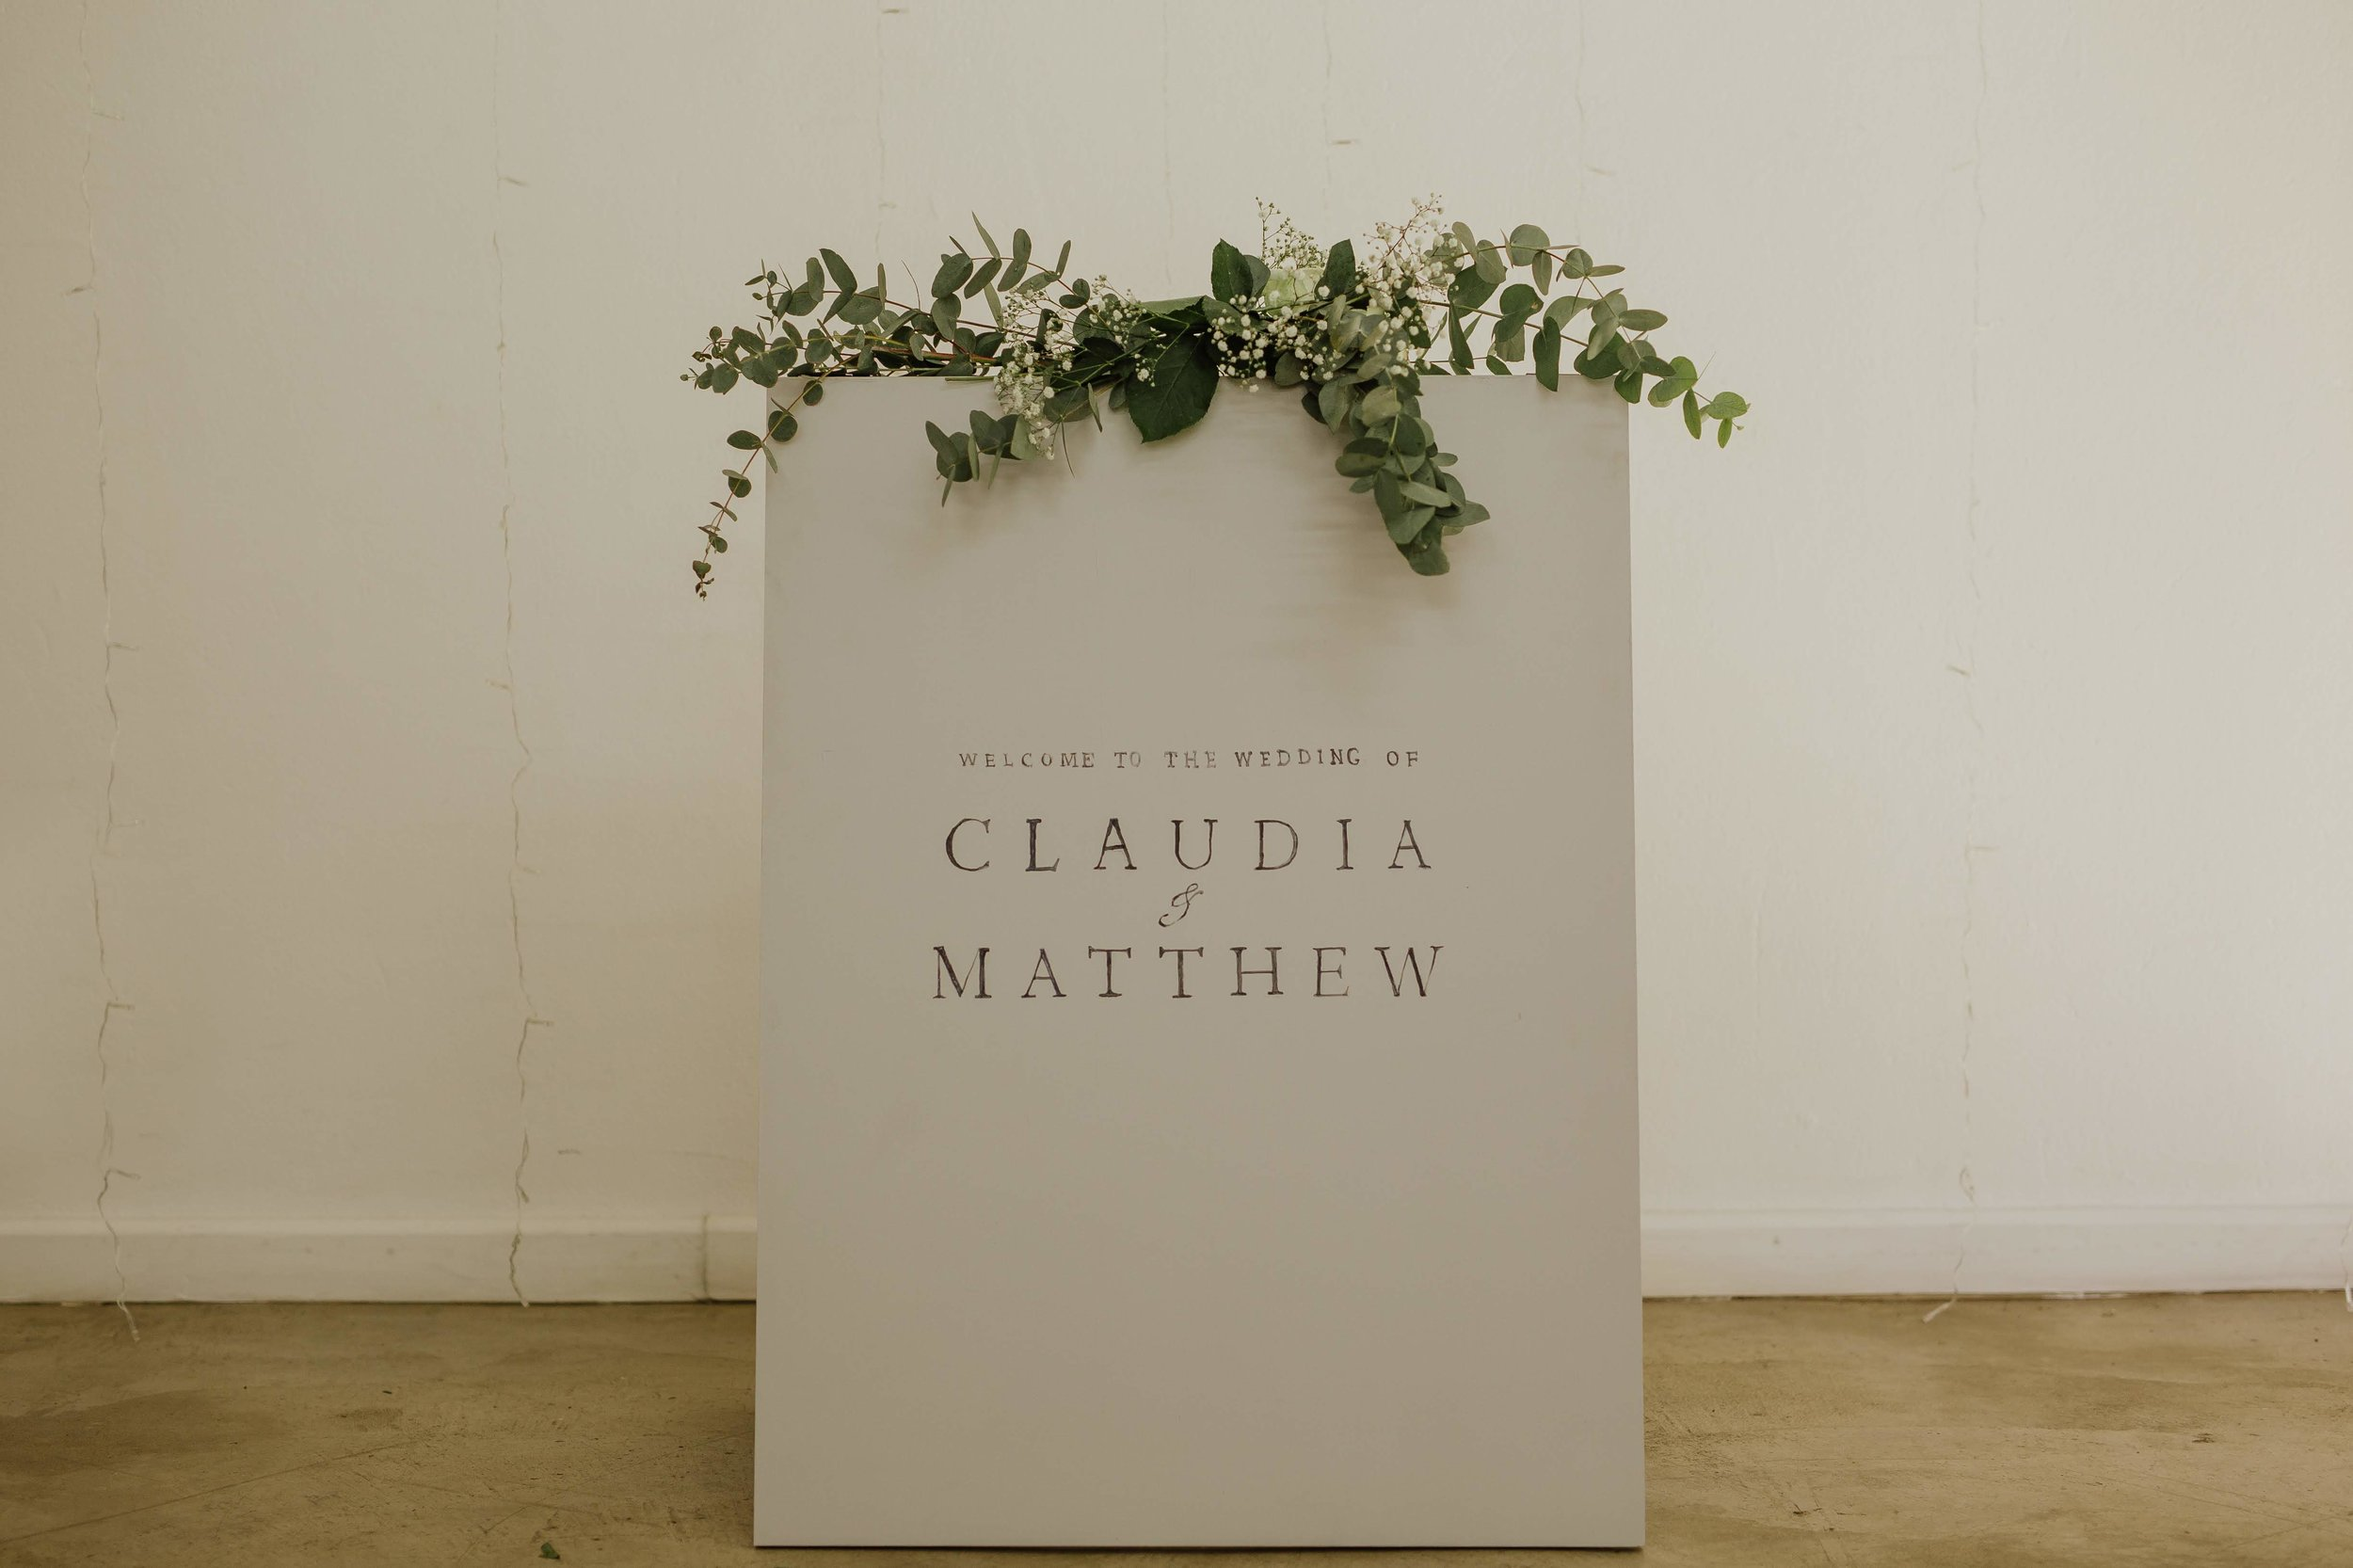 matthew and claudia-25.jpg